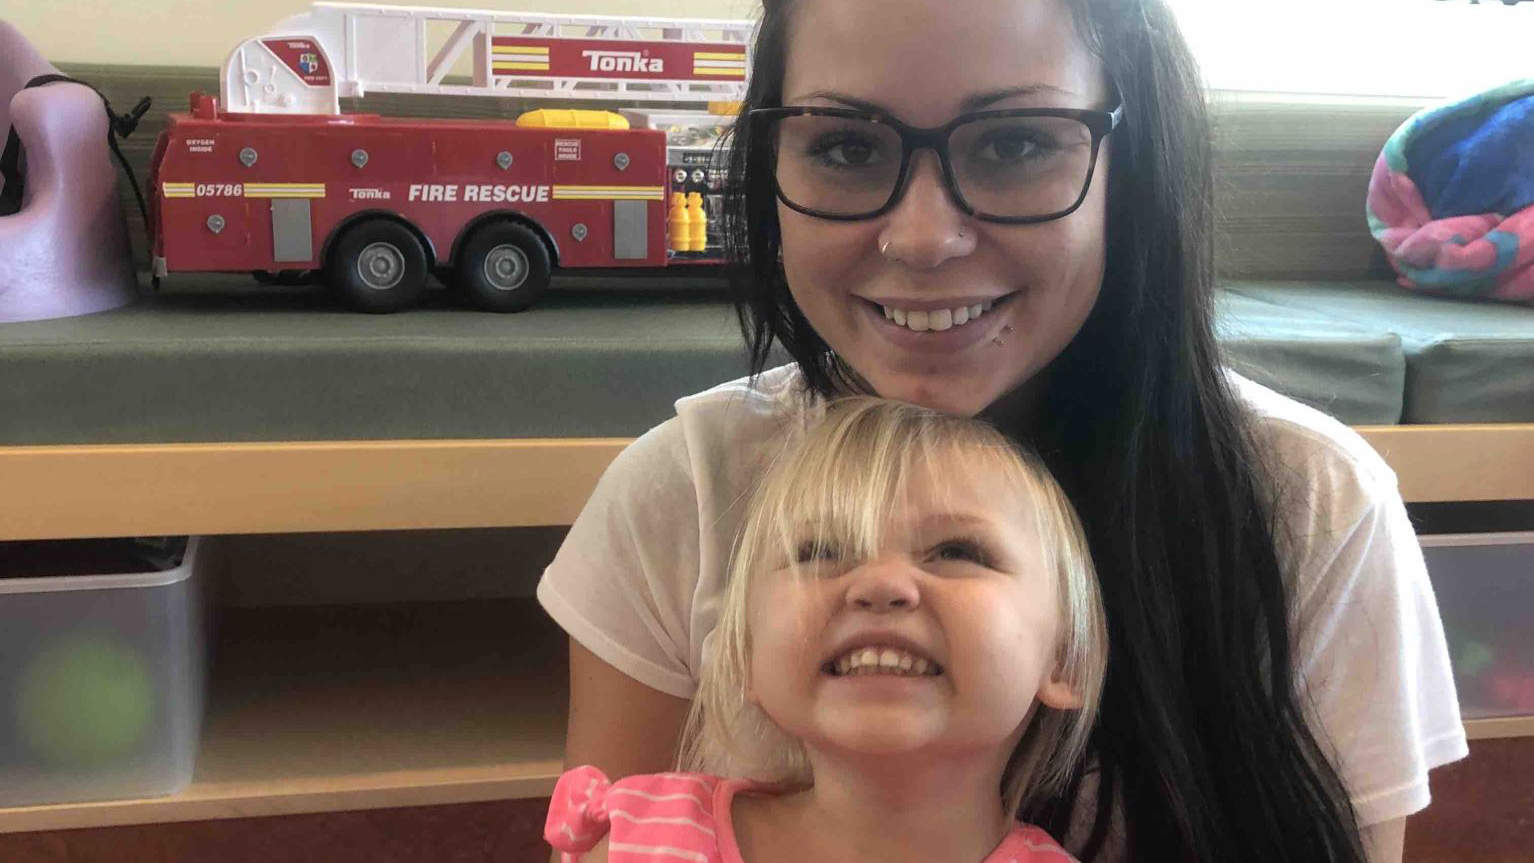 2-Year-Old Girl Partially Paralyzed After Falling on Drinking Glass: 'It's a Nightmare,' Mom Says